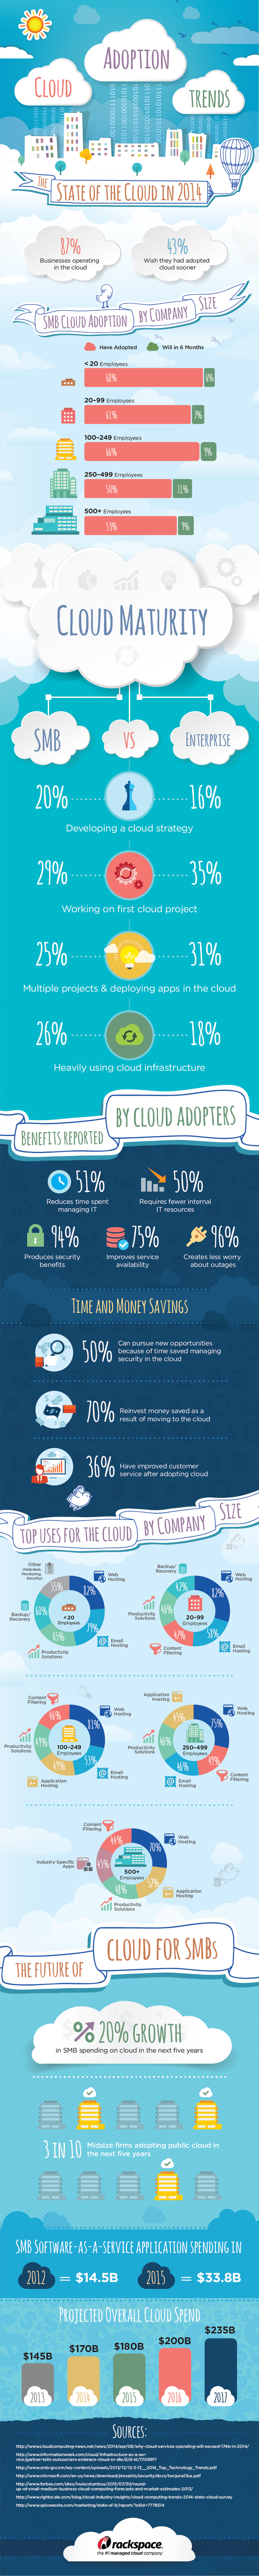 rac cloud.adoption infographic rnd03